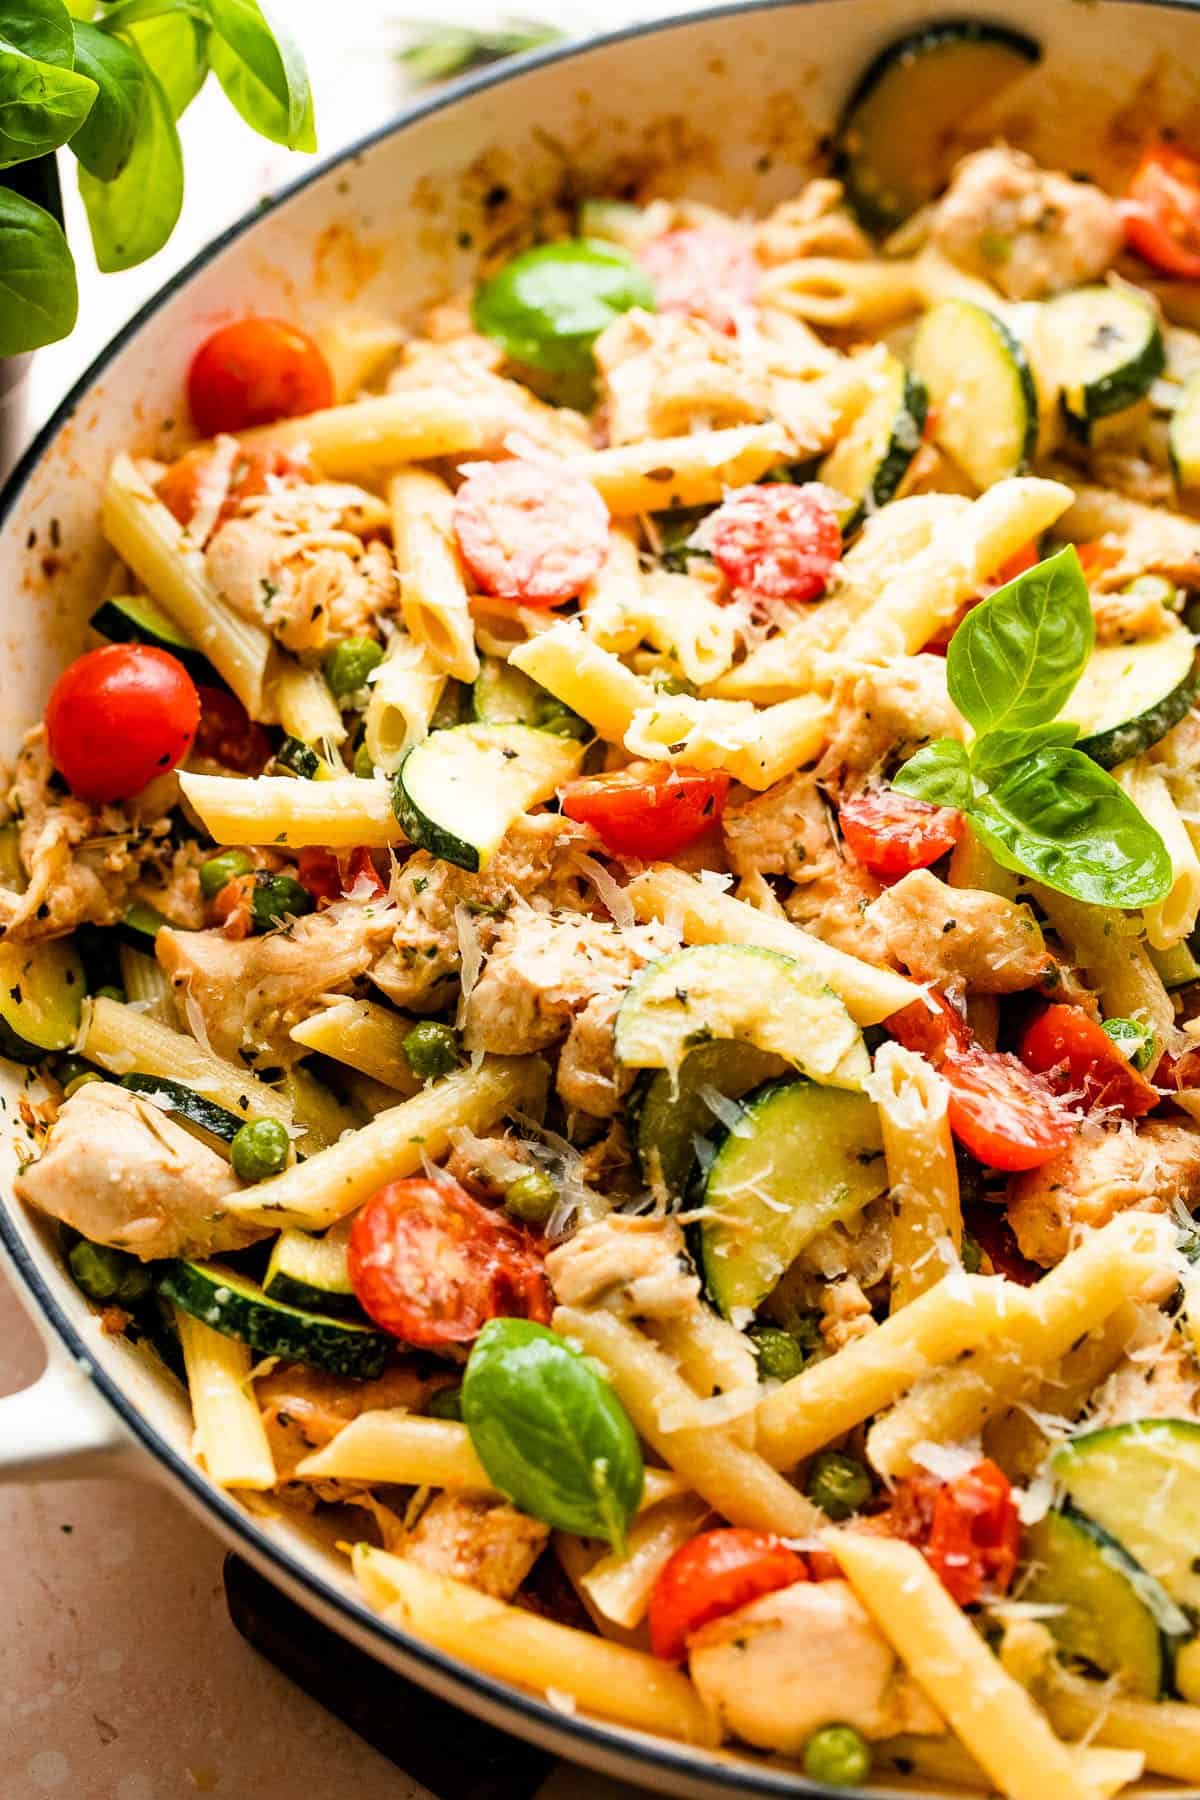 penne pasta with zucchini, tomatoes, chicken, and peas in a skillet